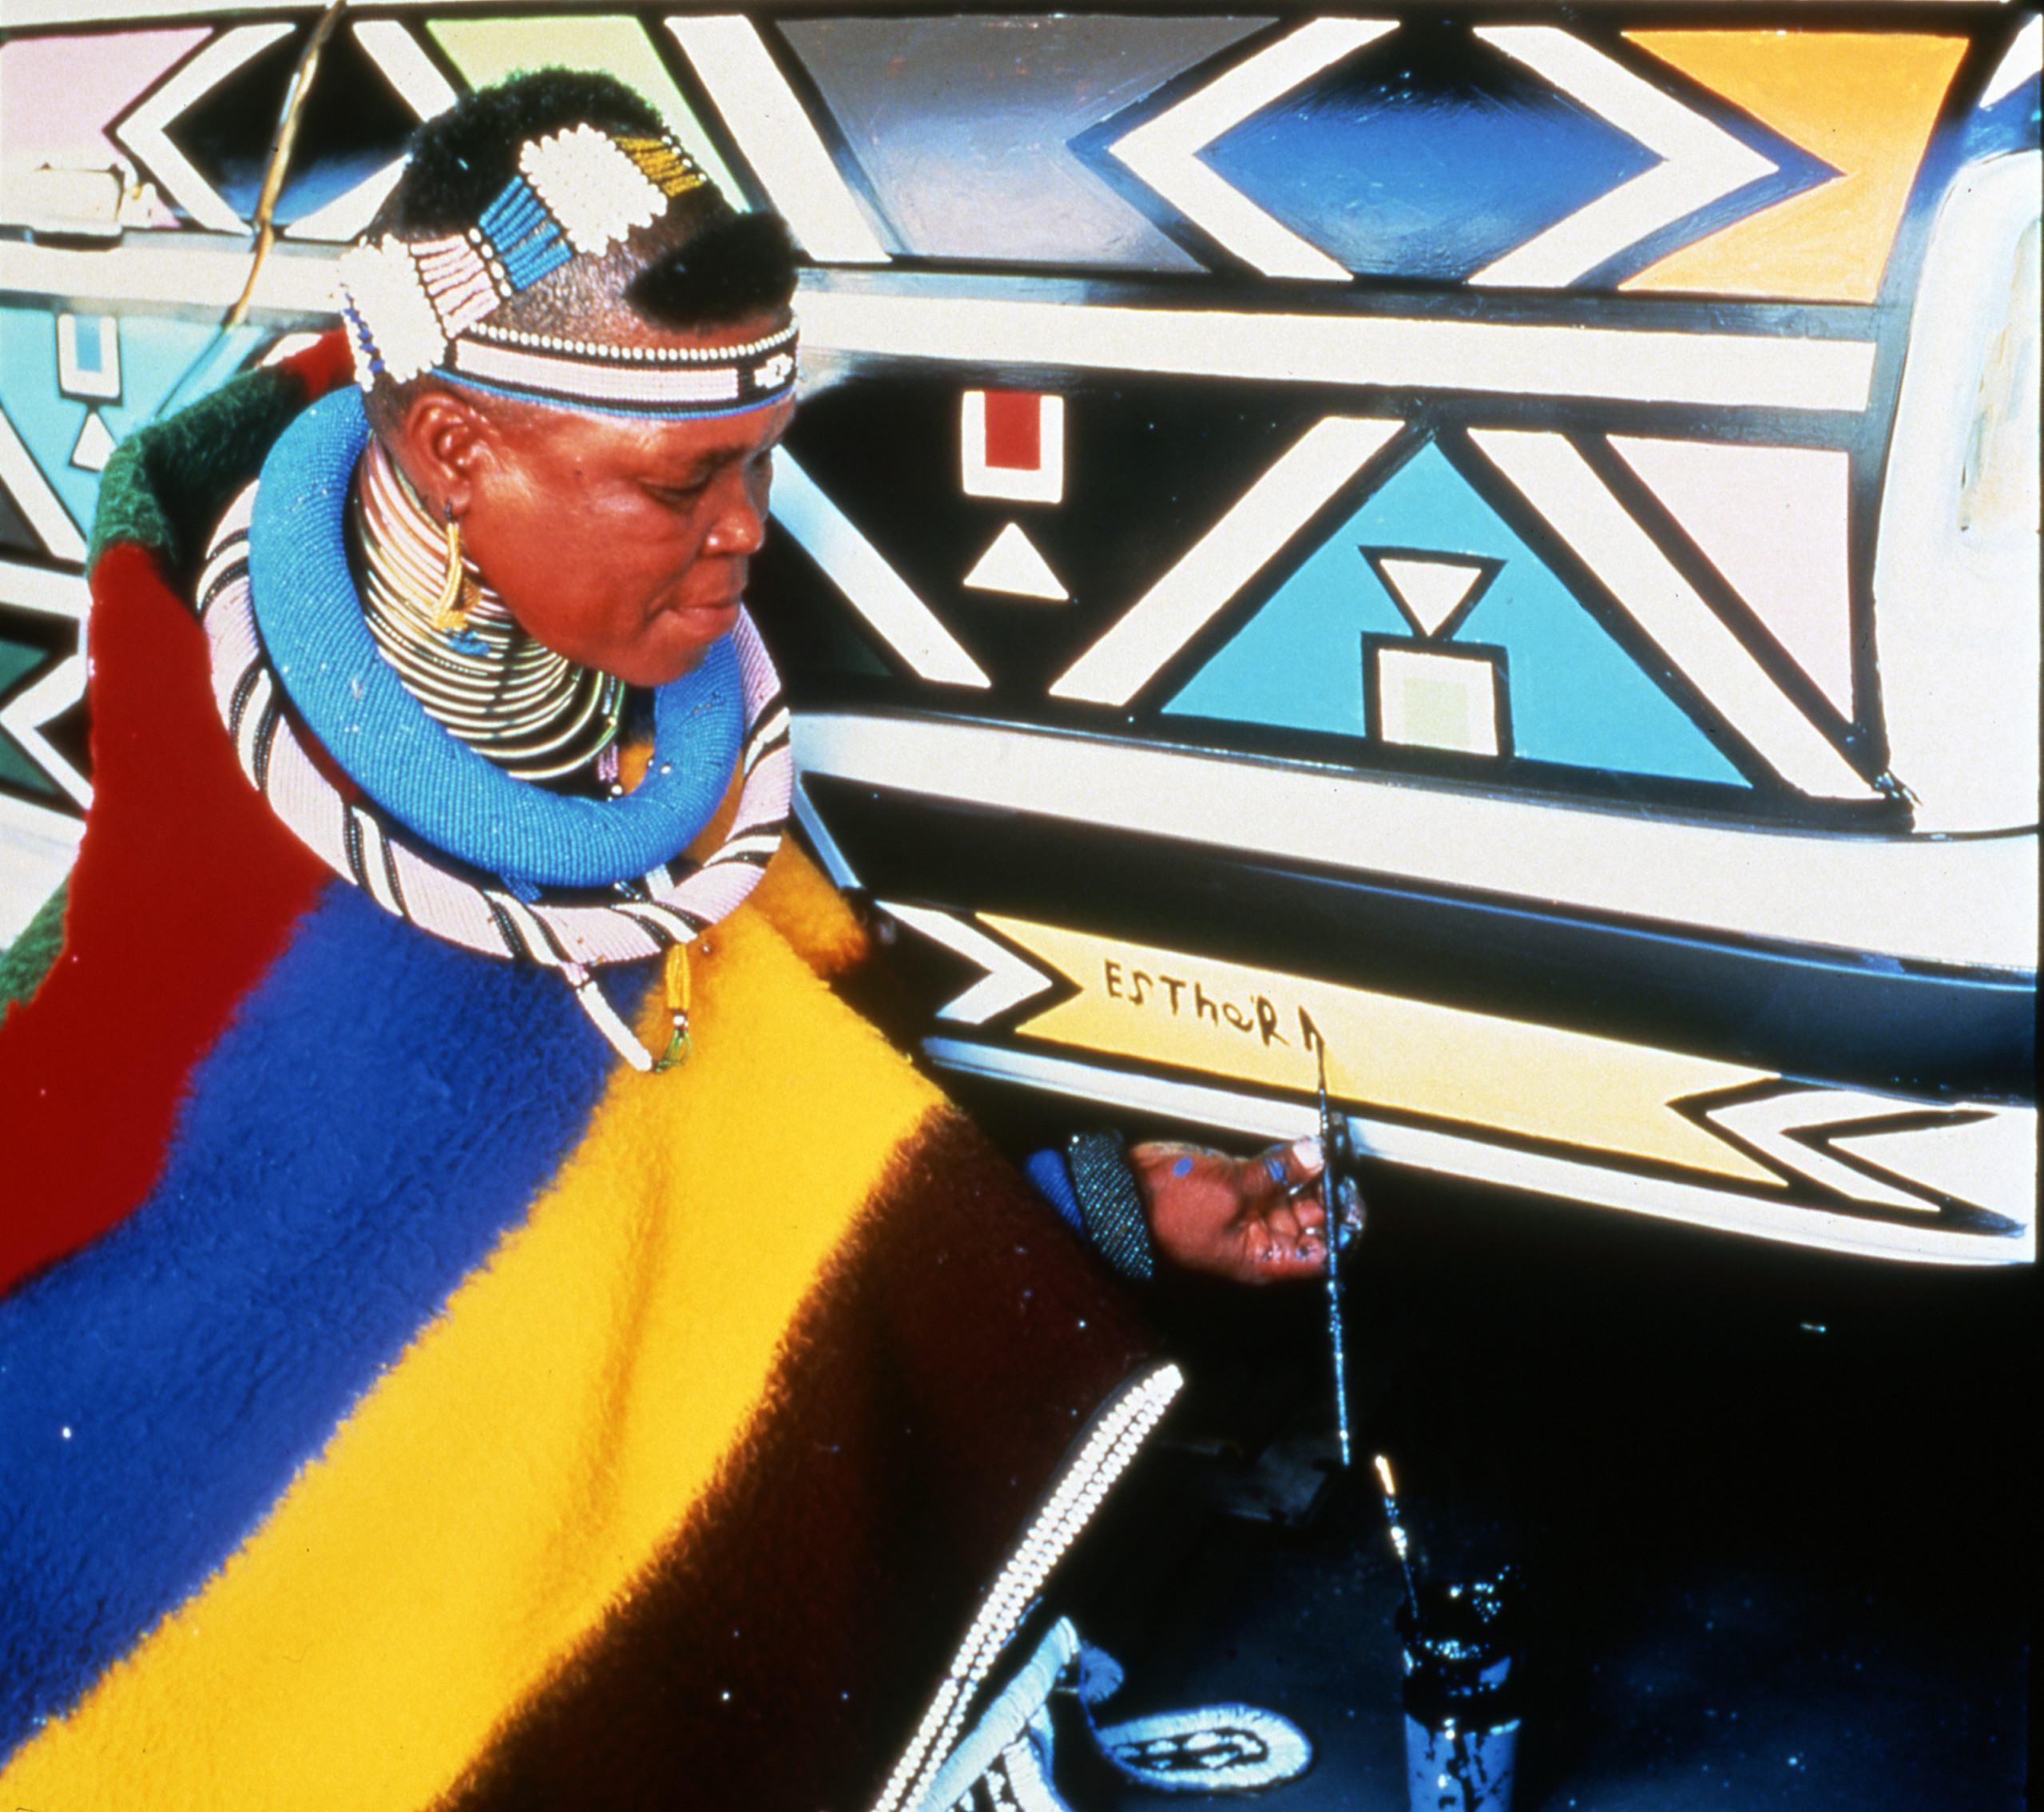 A dark-skinned woman wearing traditional African dress, paints her name on a car featuring colorful, geometric designs.